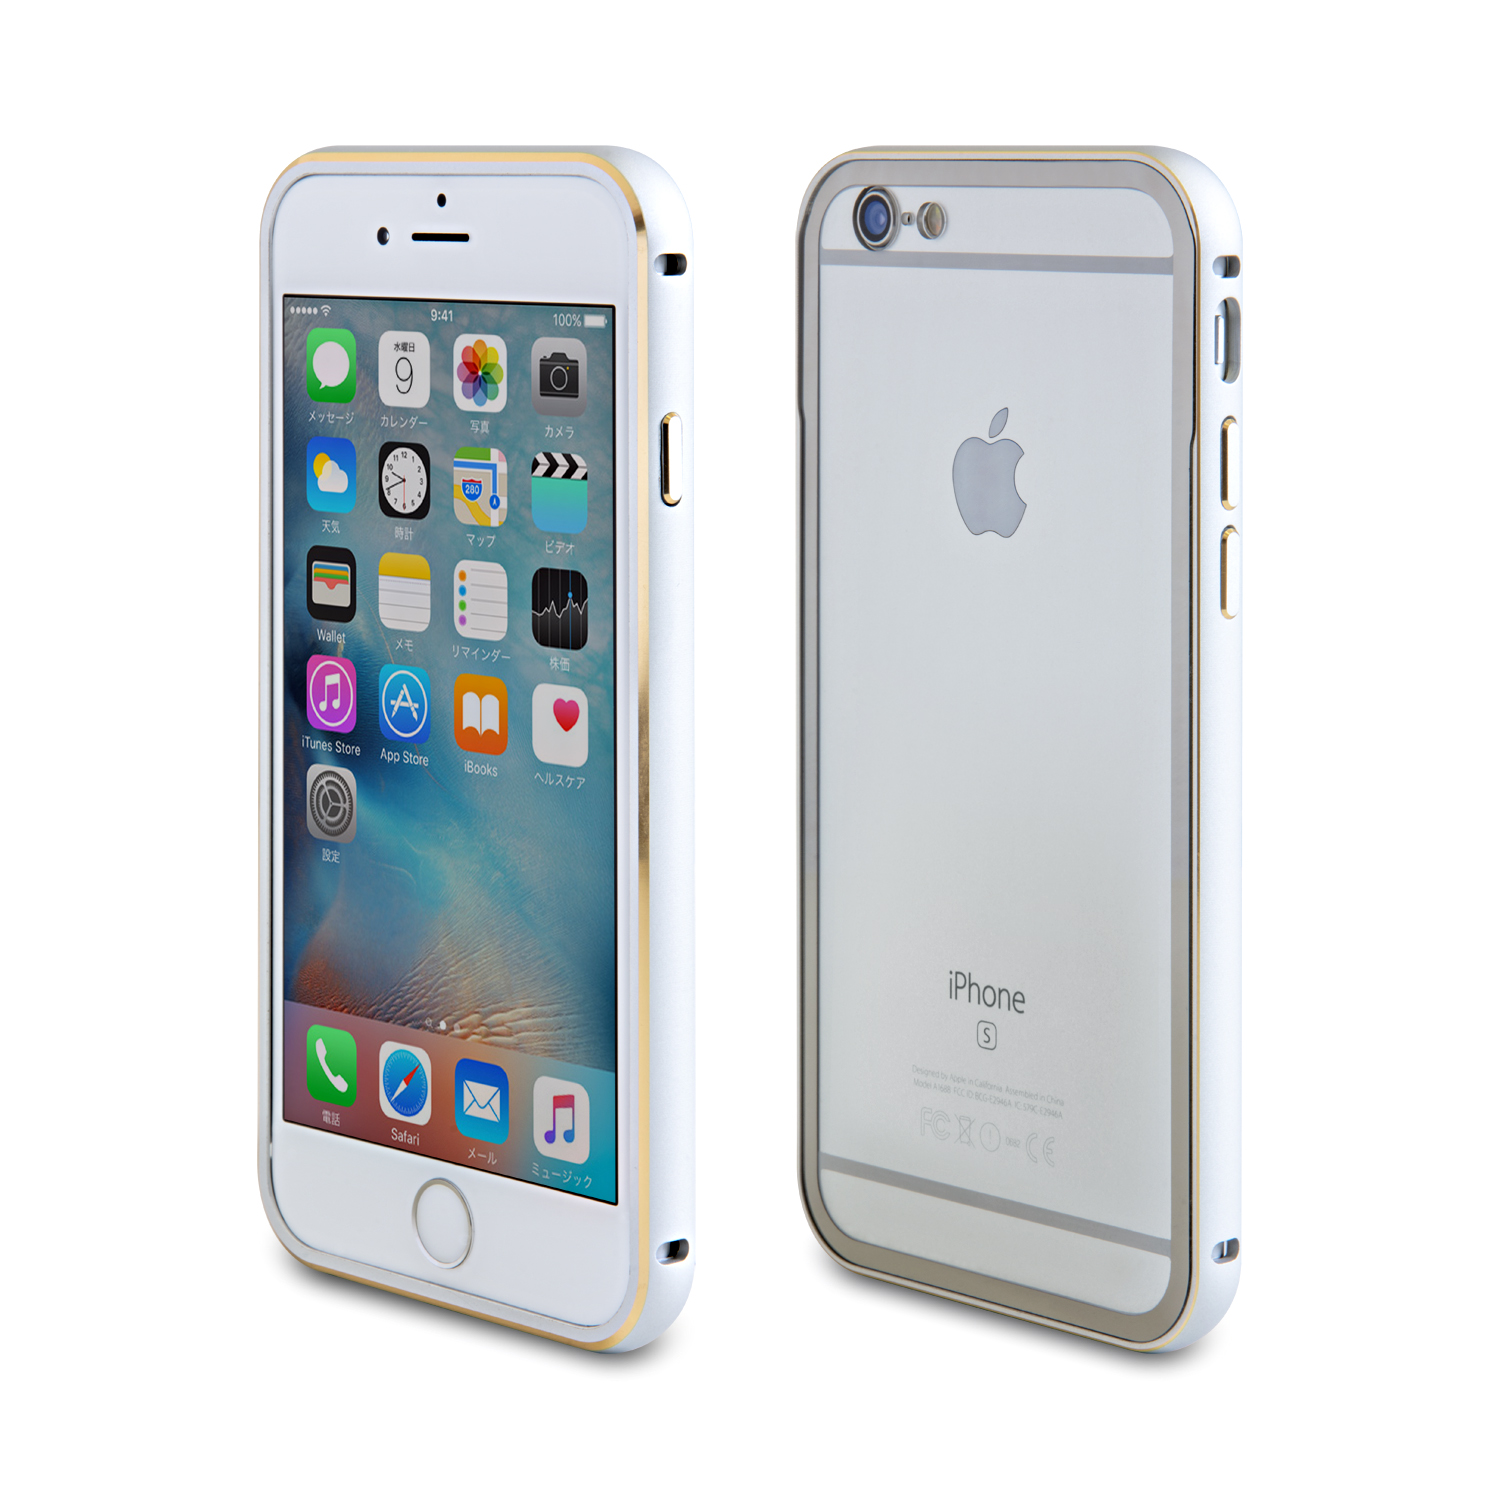 iPhone6/6s アルミバンパー + 背面保護プレート シルバー 装着イメージ